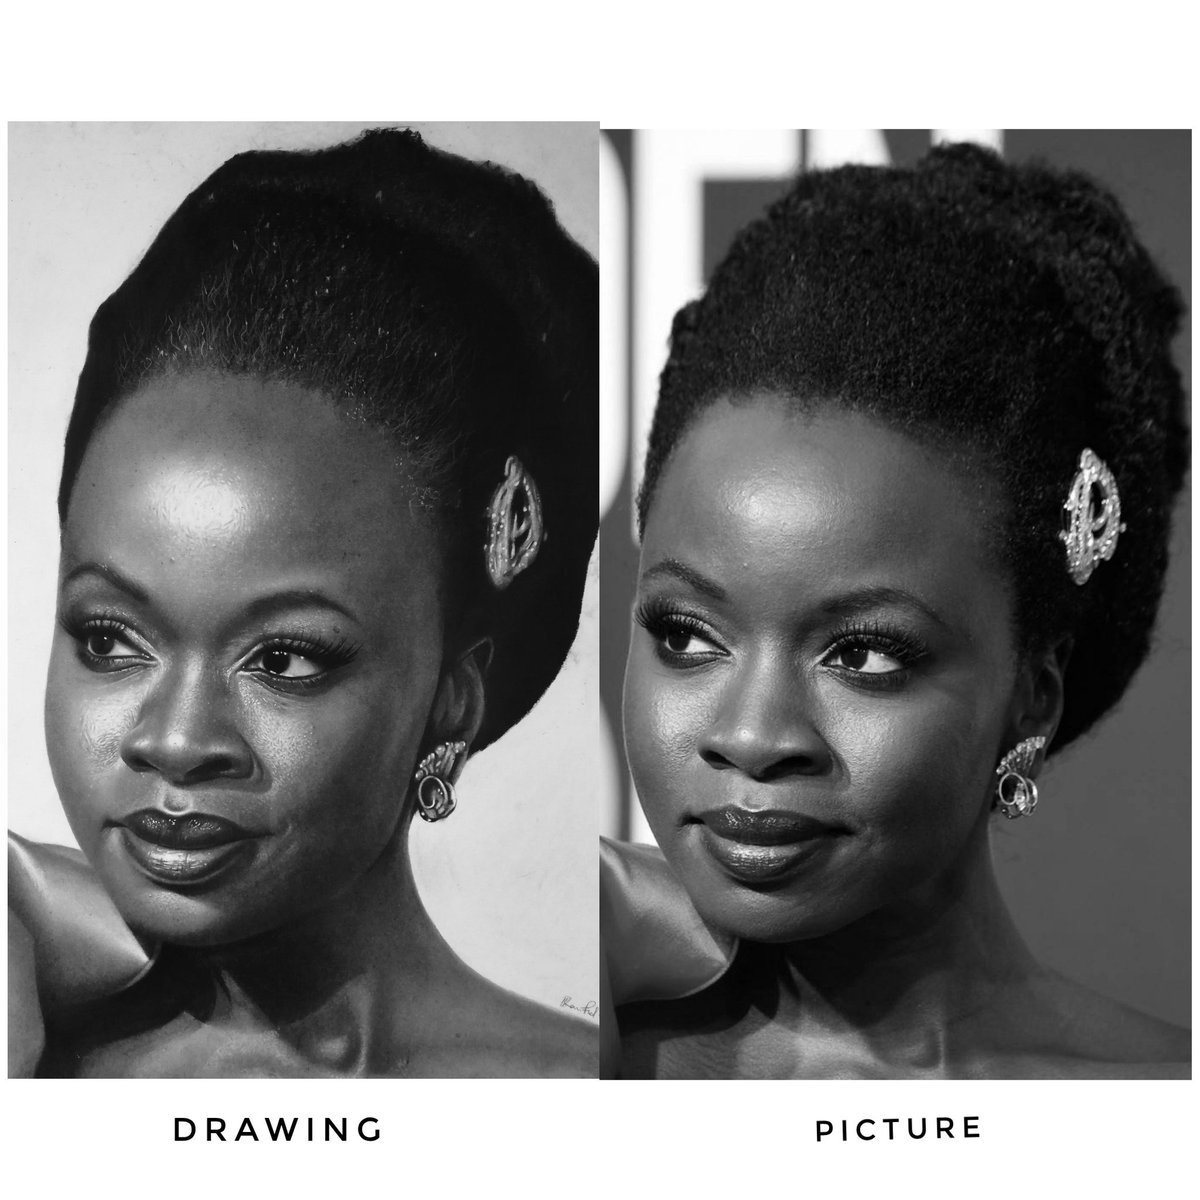 Here&#39;s a side by side comparison of @DanaiGurira potrait and the reference.. I know its not exact, but given the little time I had l think l did some justice.. Wat are your thoughts?  PLEASE RETWEET  #wearenigeriancreatives #Zimbabwe #avengersendgame  #lupitanyongo #BlackPanther  <br>http://pic.twitter.com/w3pFi2E1DQ